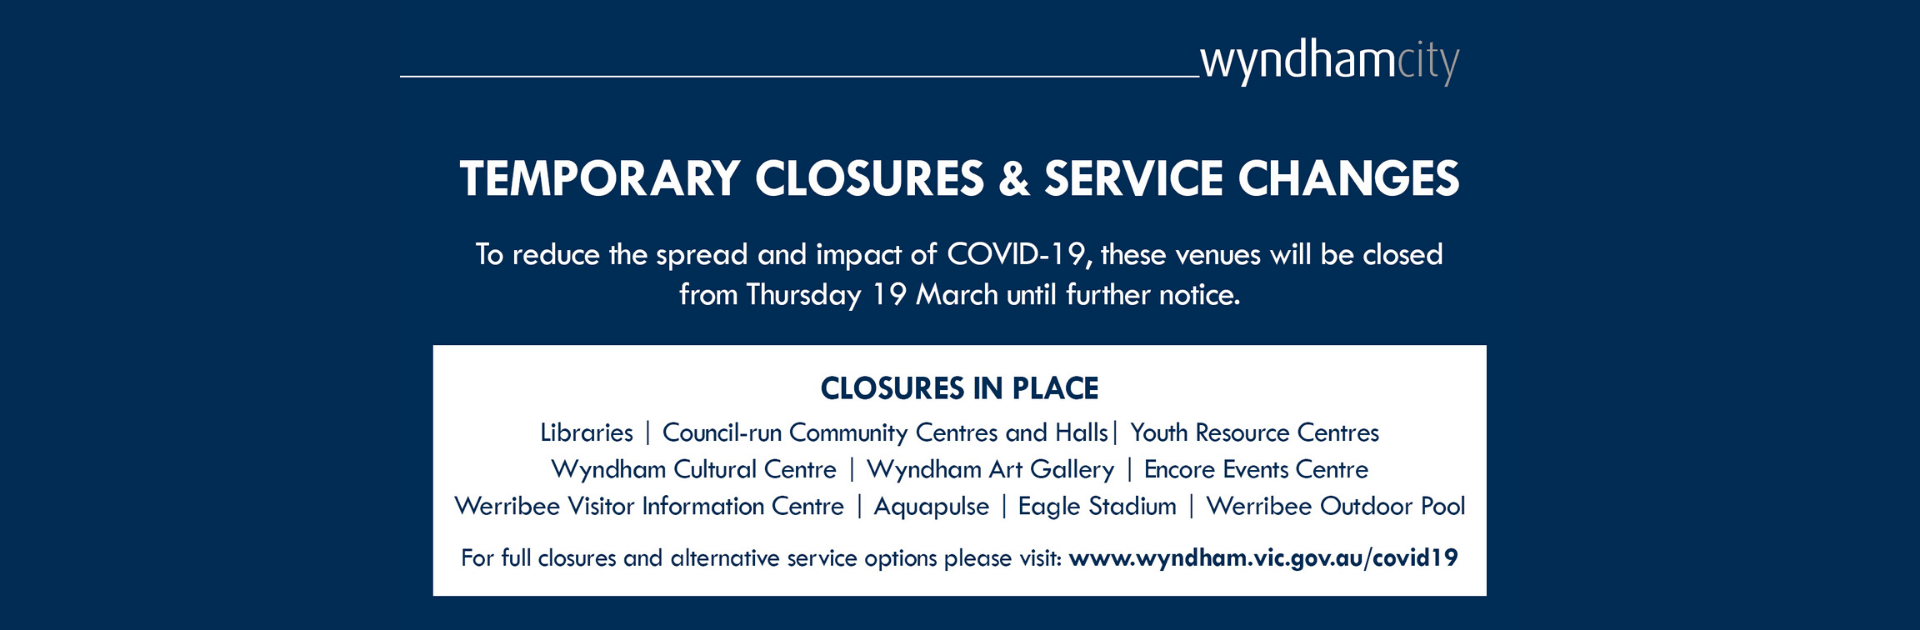 Temporary Closures and Service Changes